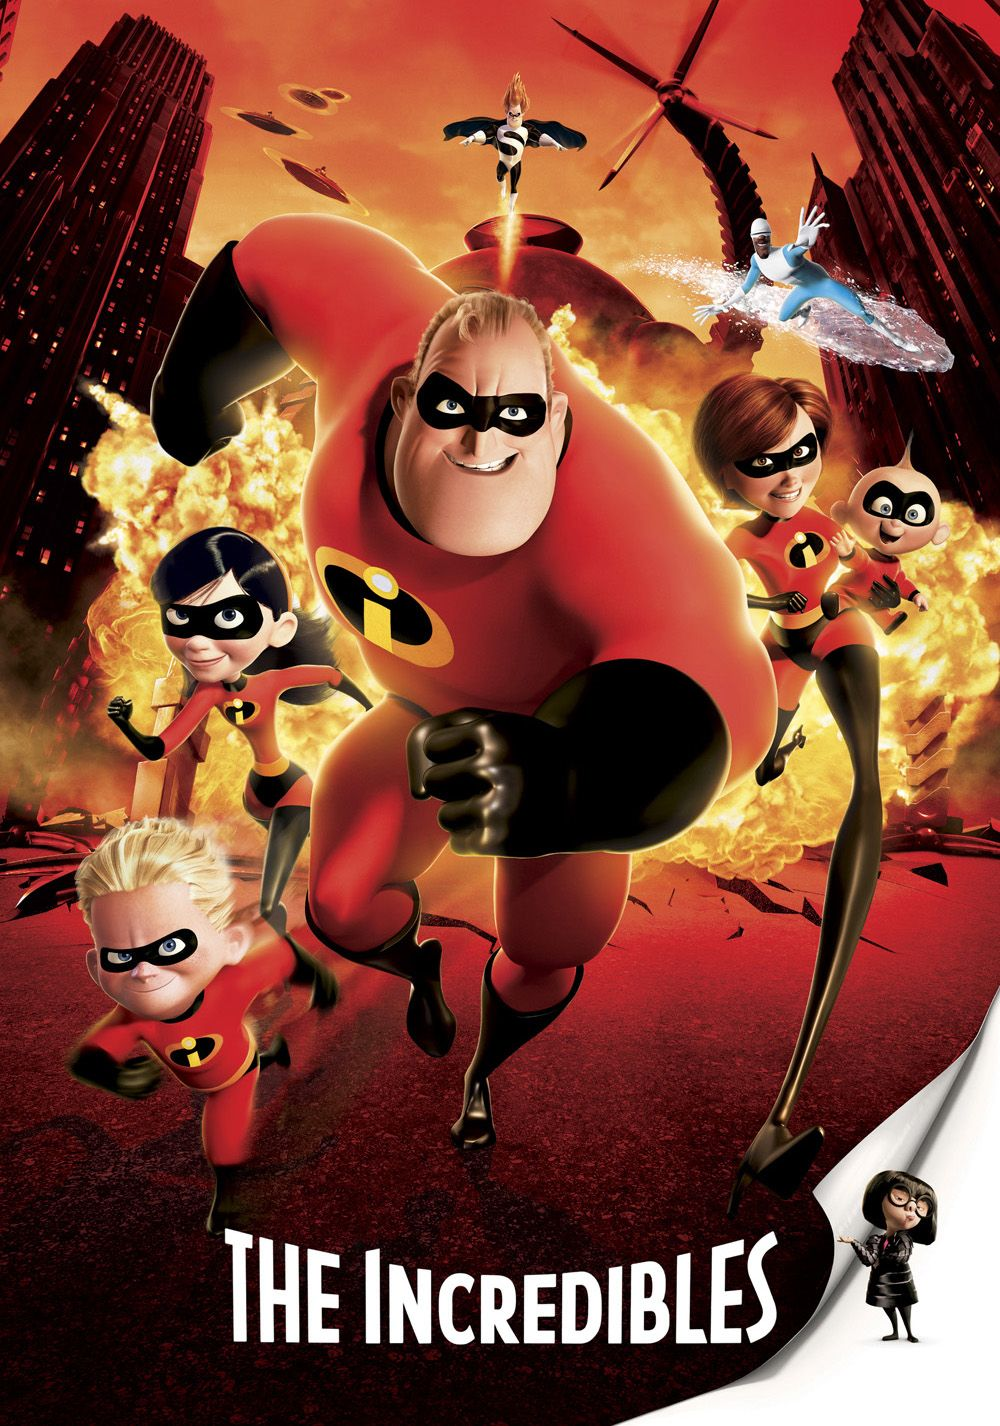 The Incredibles (2004)   Twice the hero he used to be